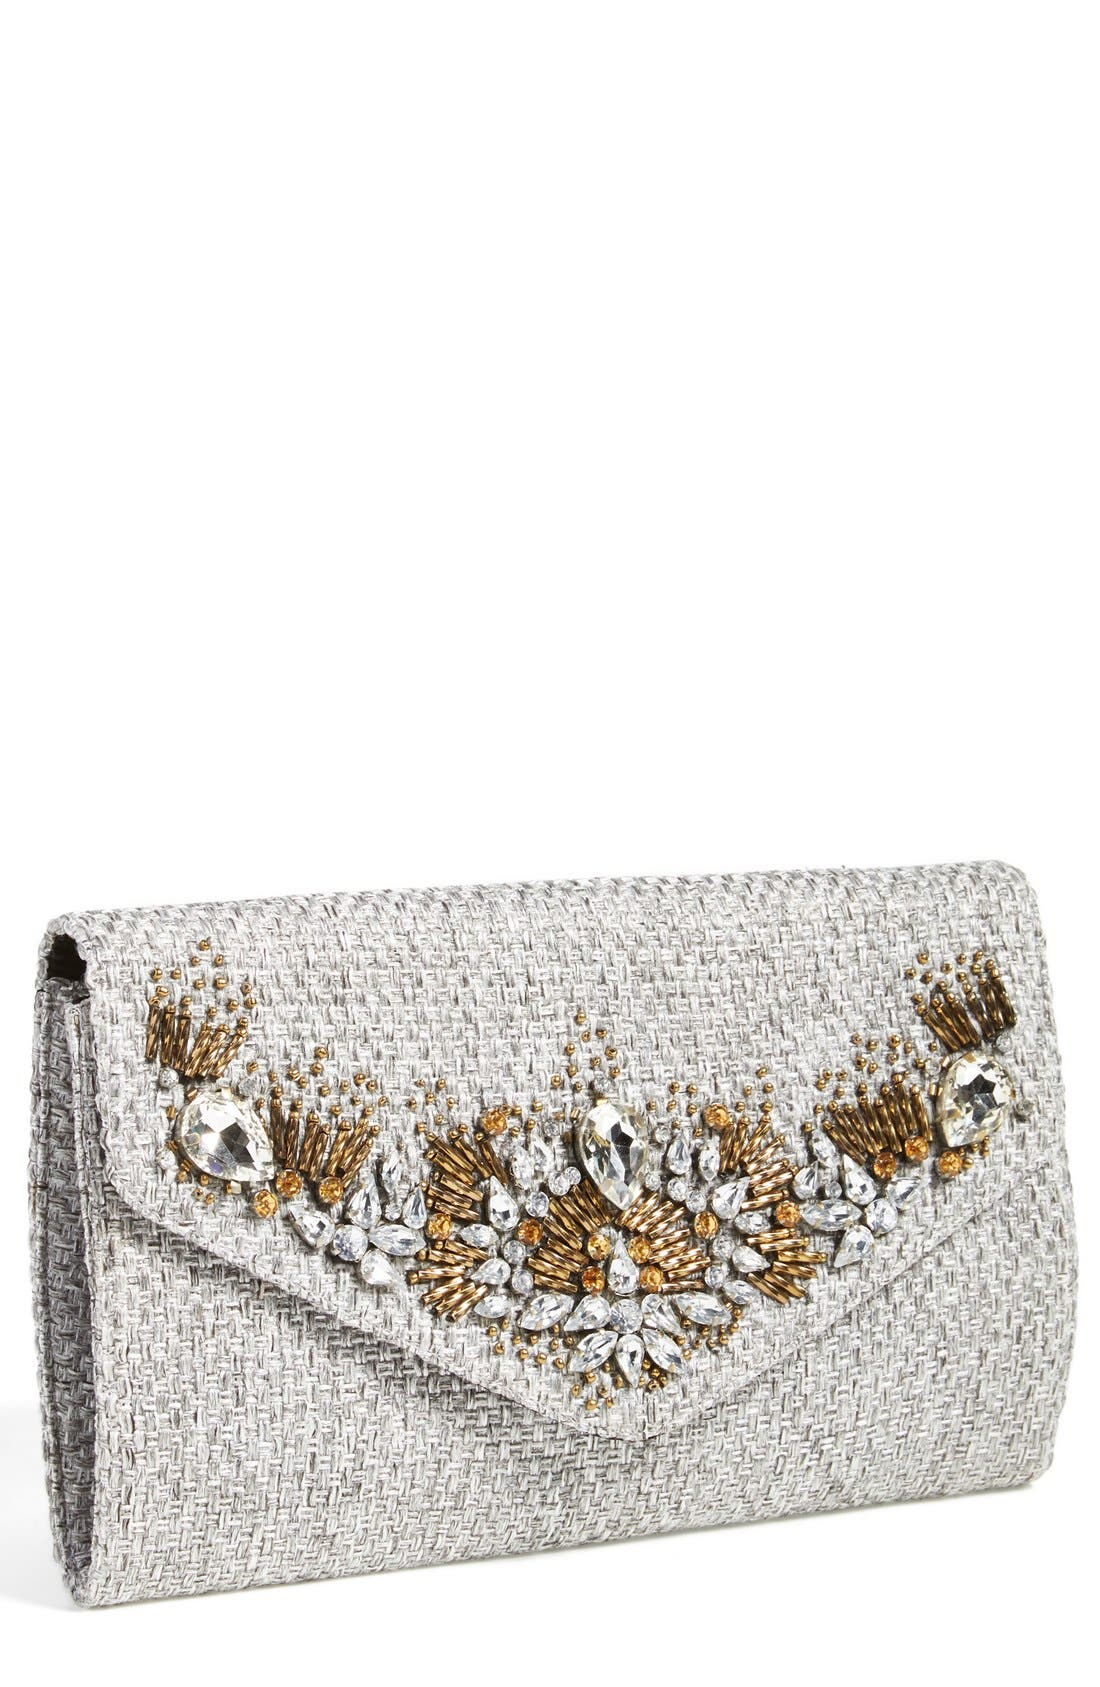 Alternate Image 1 Selected - Glint 'Crystallized' Envelope Clutch